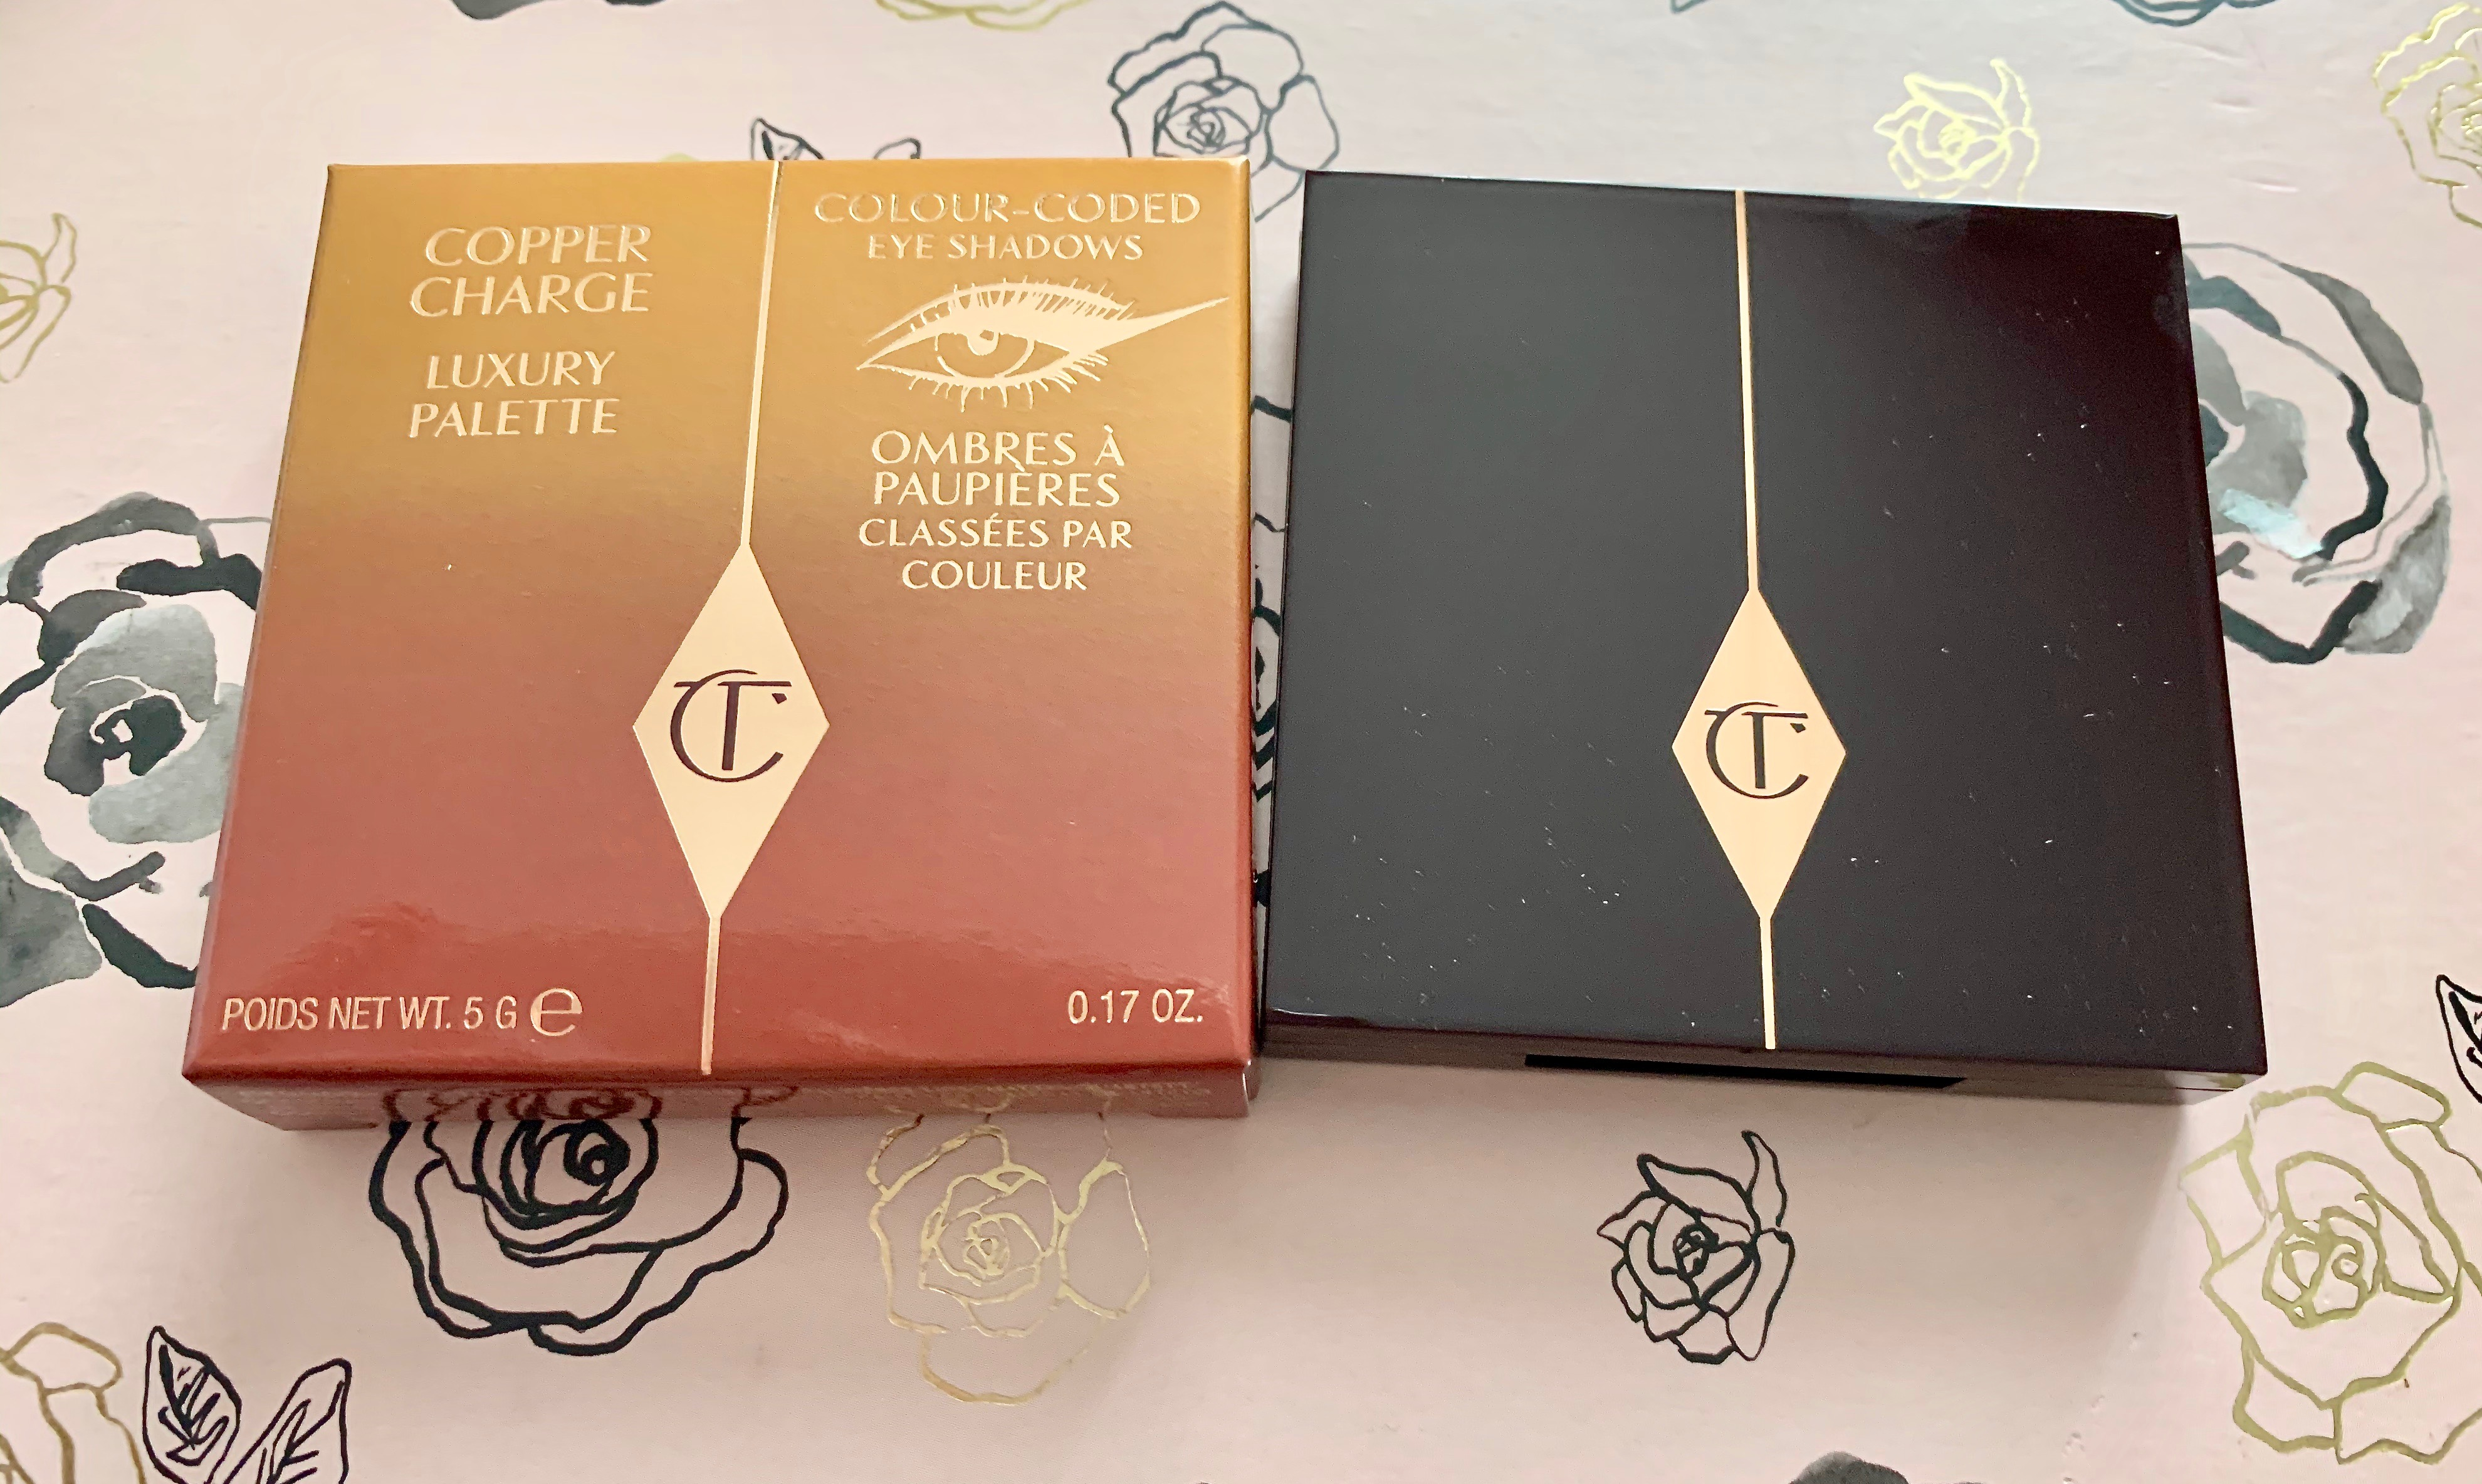 Charlotte Tilbury Copper Charge 2